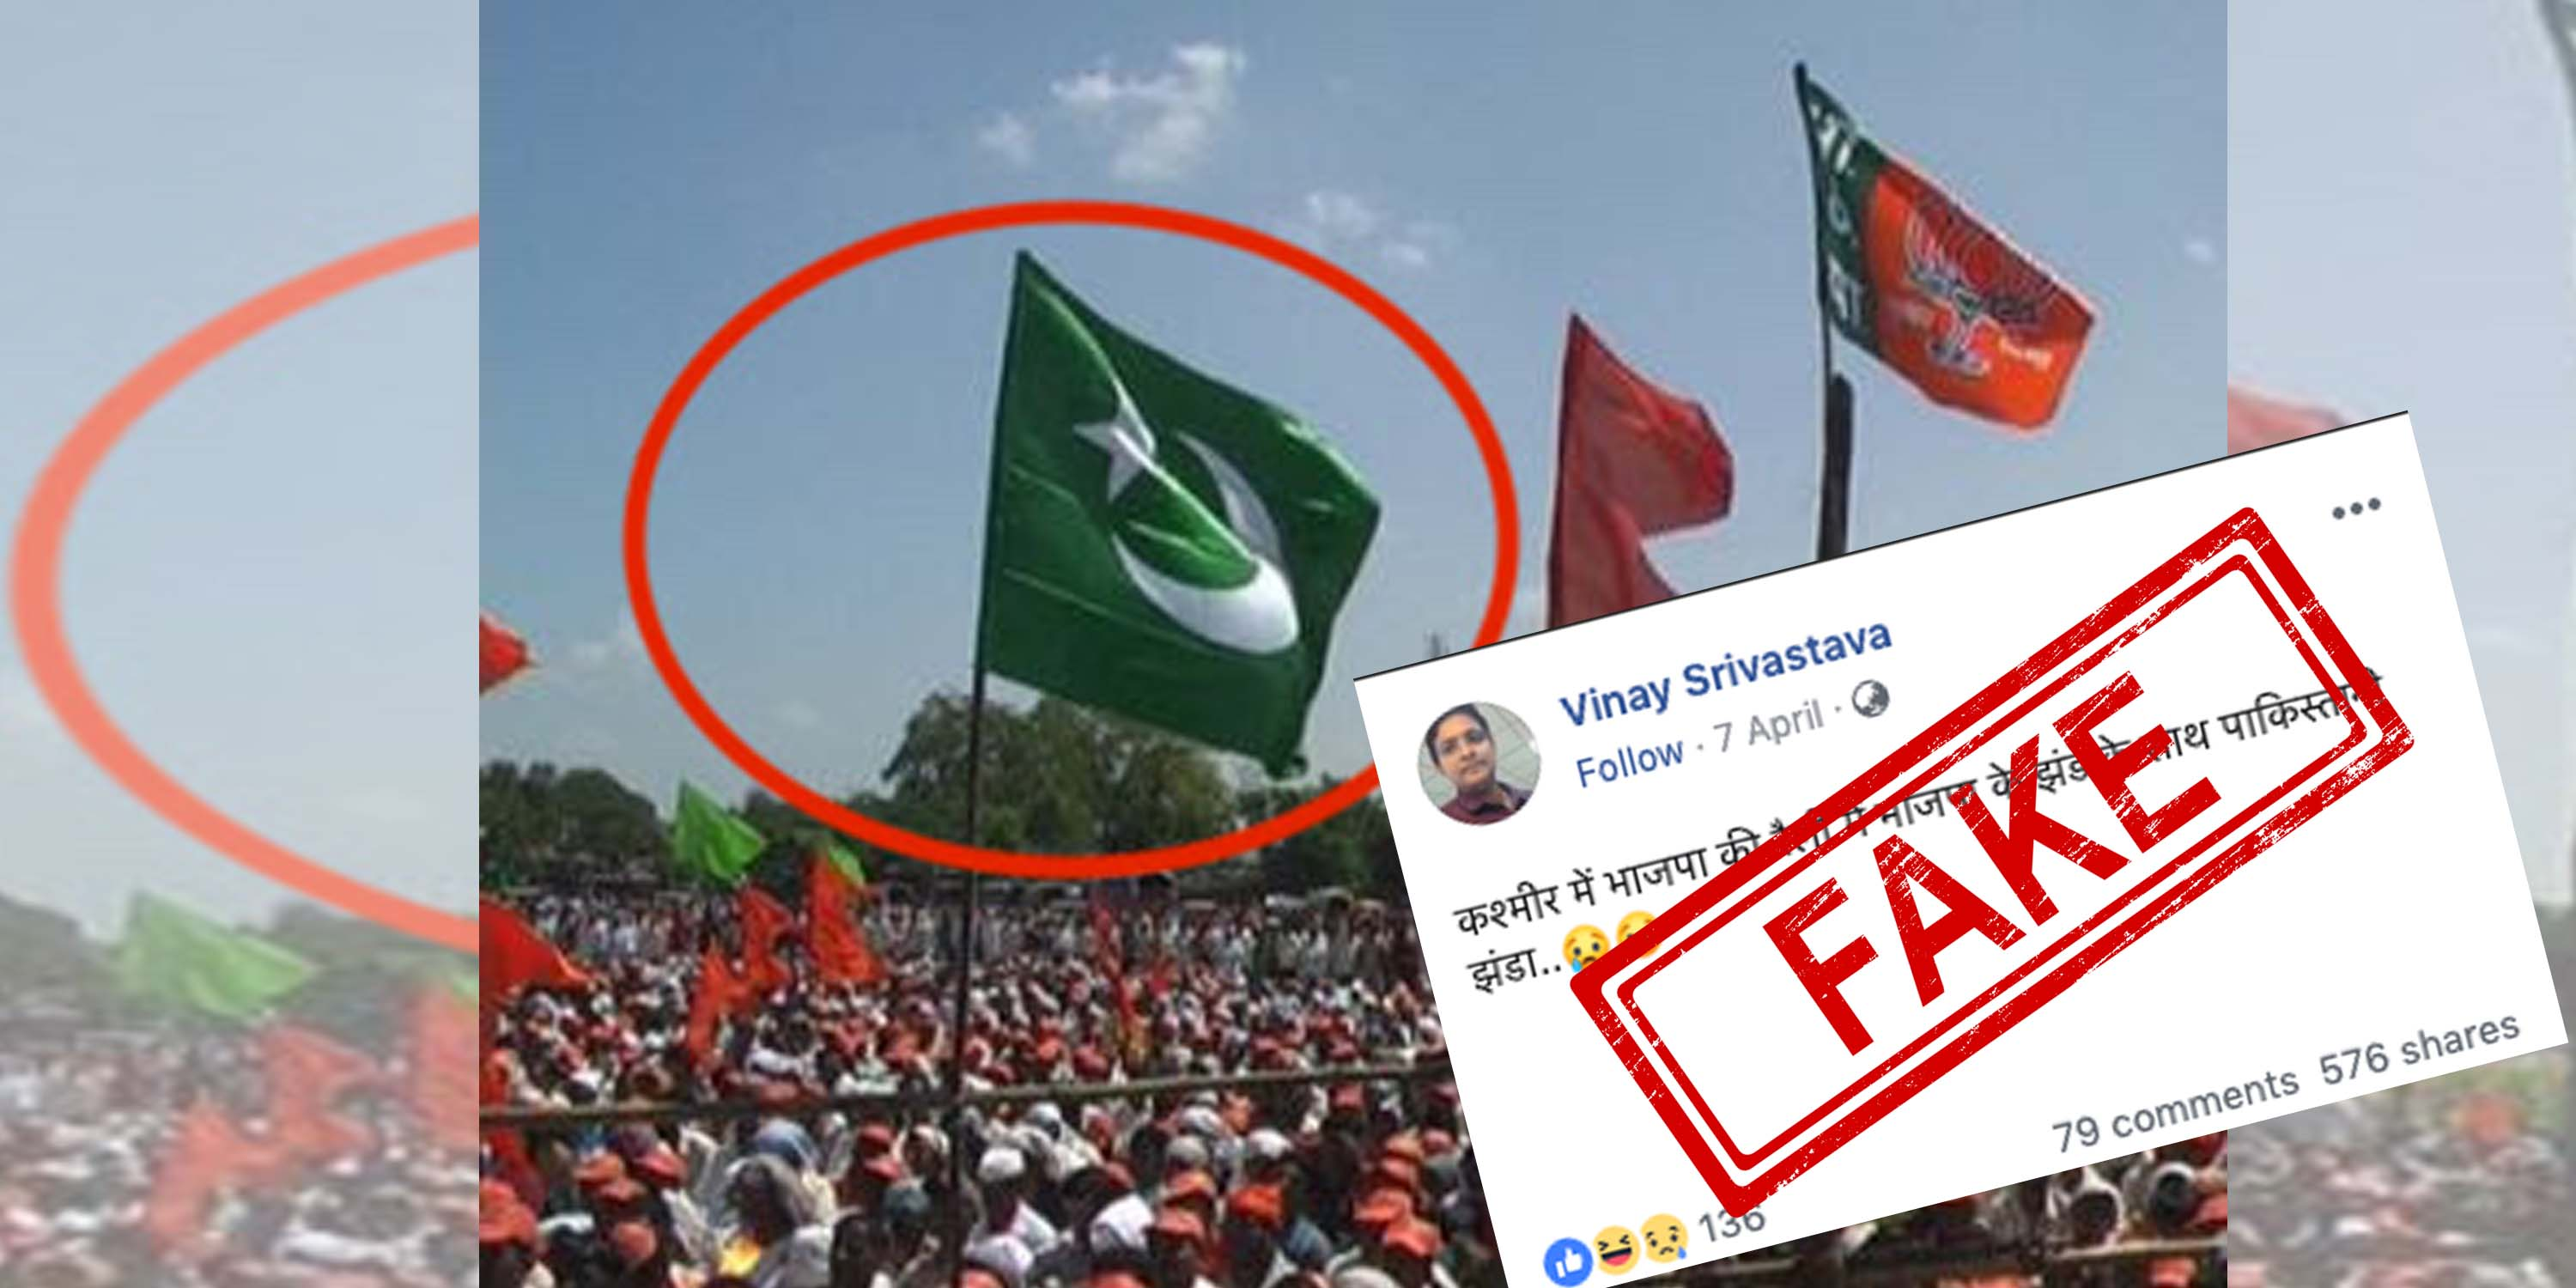 Pakistan, Flag, Rally, BJP, Shiv Sena, Elections, Jammu and Kashmir, Maharashtra, 2009, NewsMobile, Mobile, News, India, Fake, News, Fact Checker, NewsMobile, India